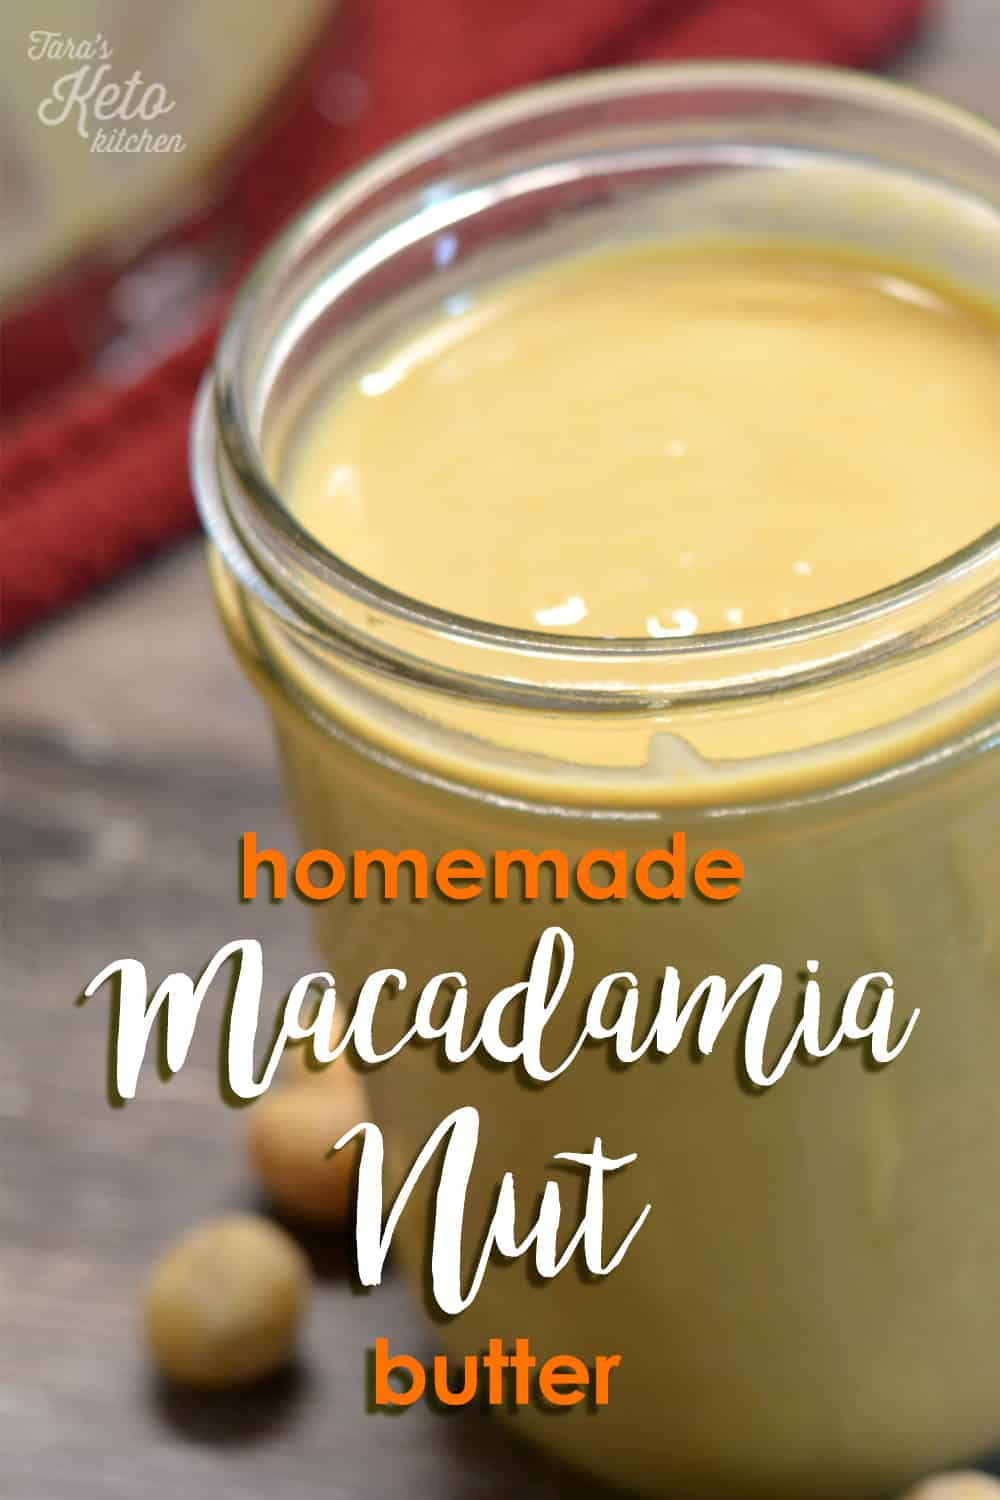 Homemade Macadamia Nut butter with title